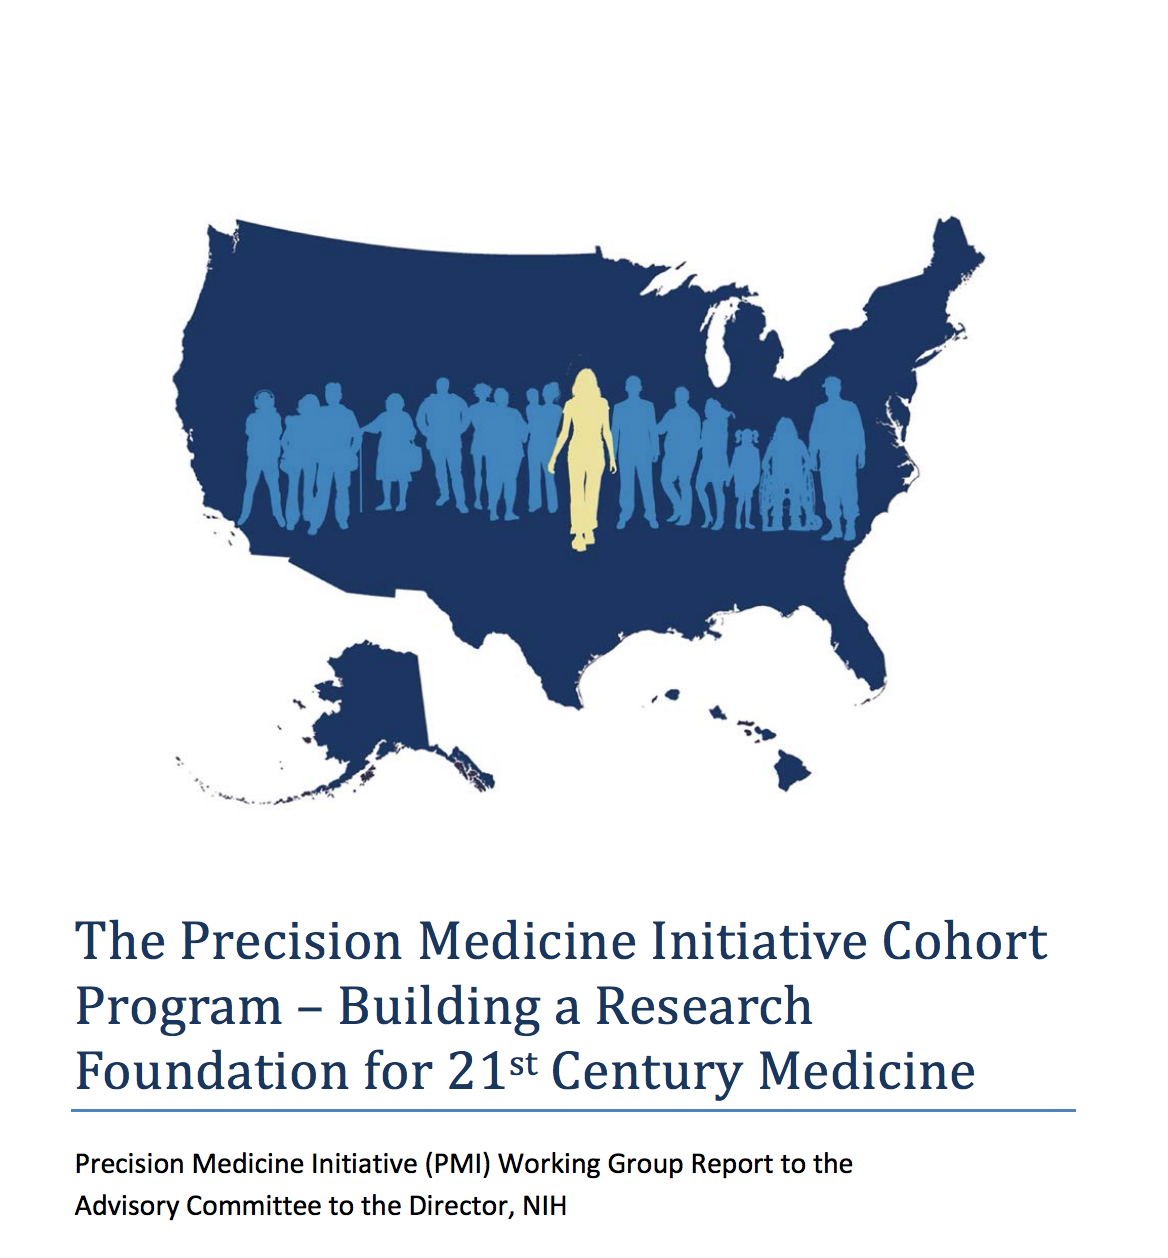 The Precision Medicine Initiative Cohort Program -